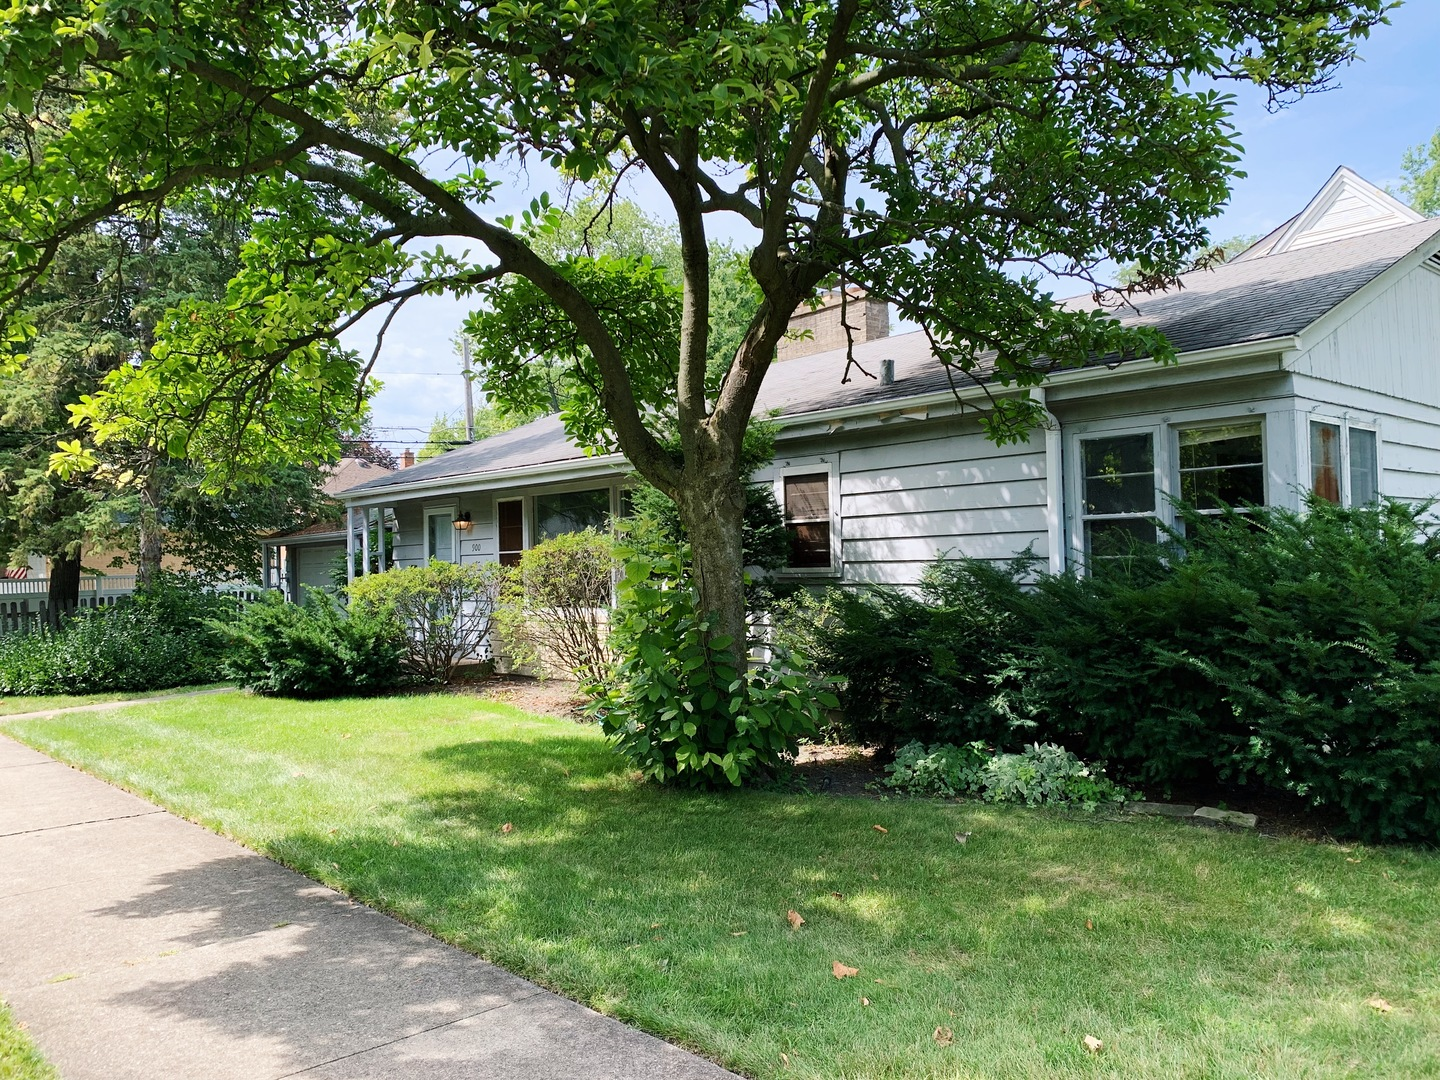 900 Forestview Avenue, Park Ridge in Cook County, IL 60068 Home for Sale